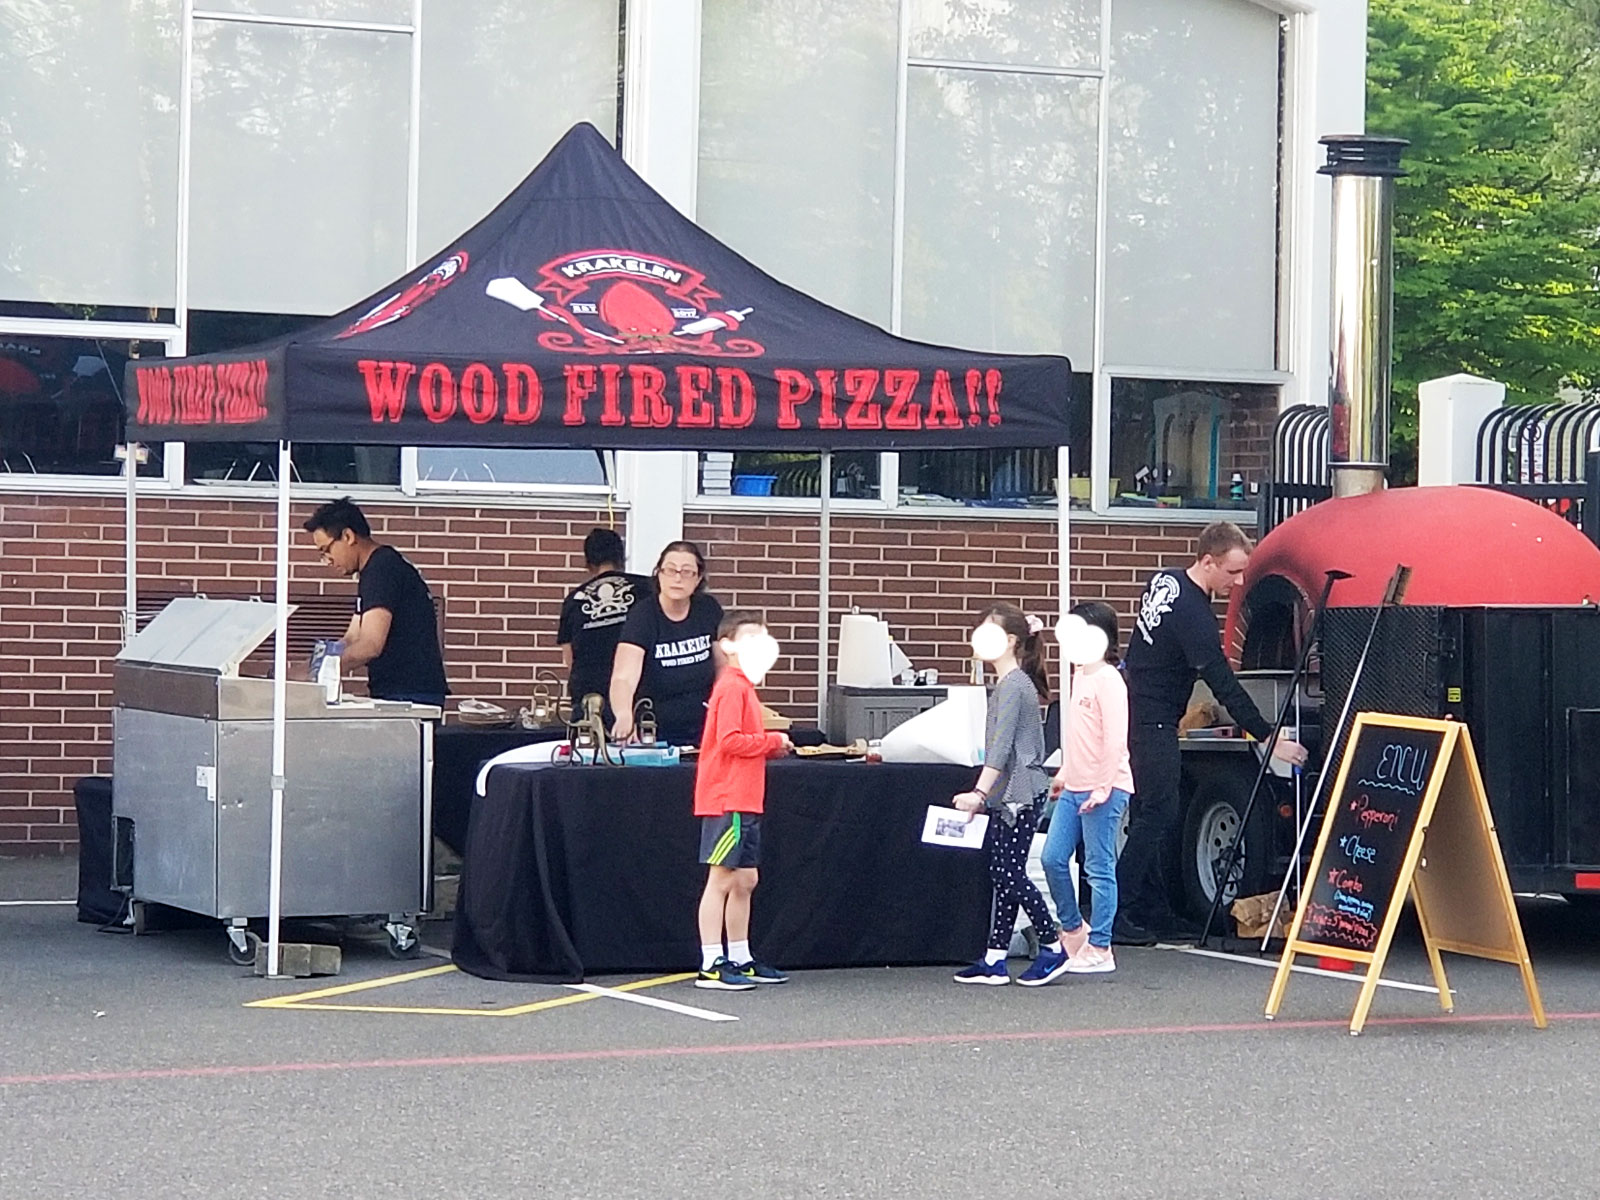 A Krakelen pizza food tent with staff using a grill and wood oven, at the Wilsonville campus